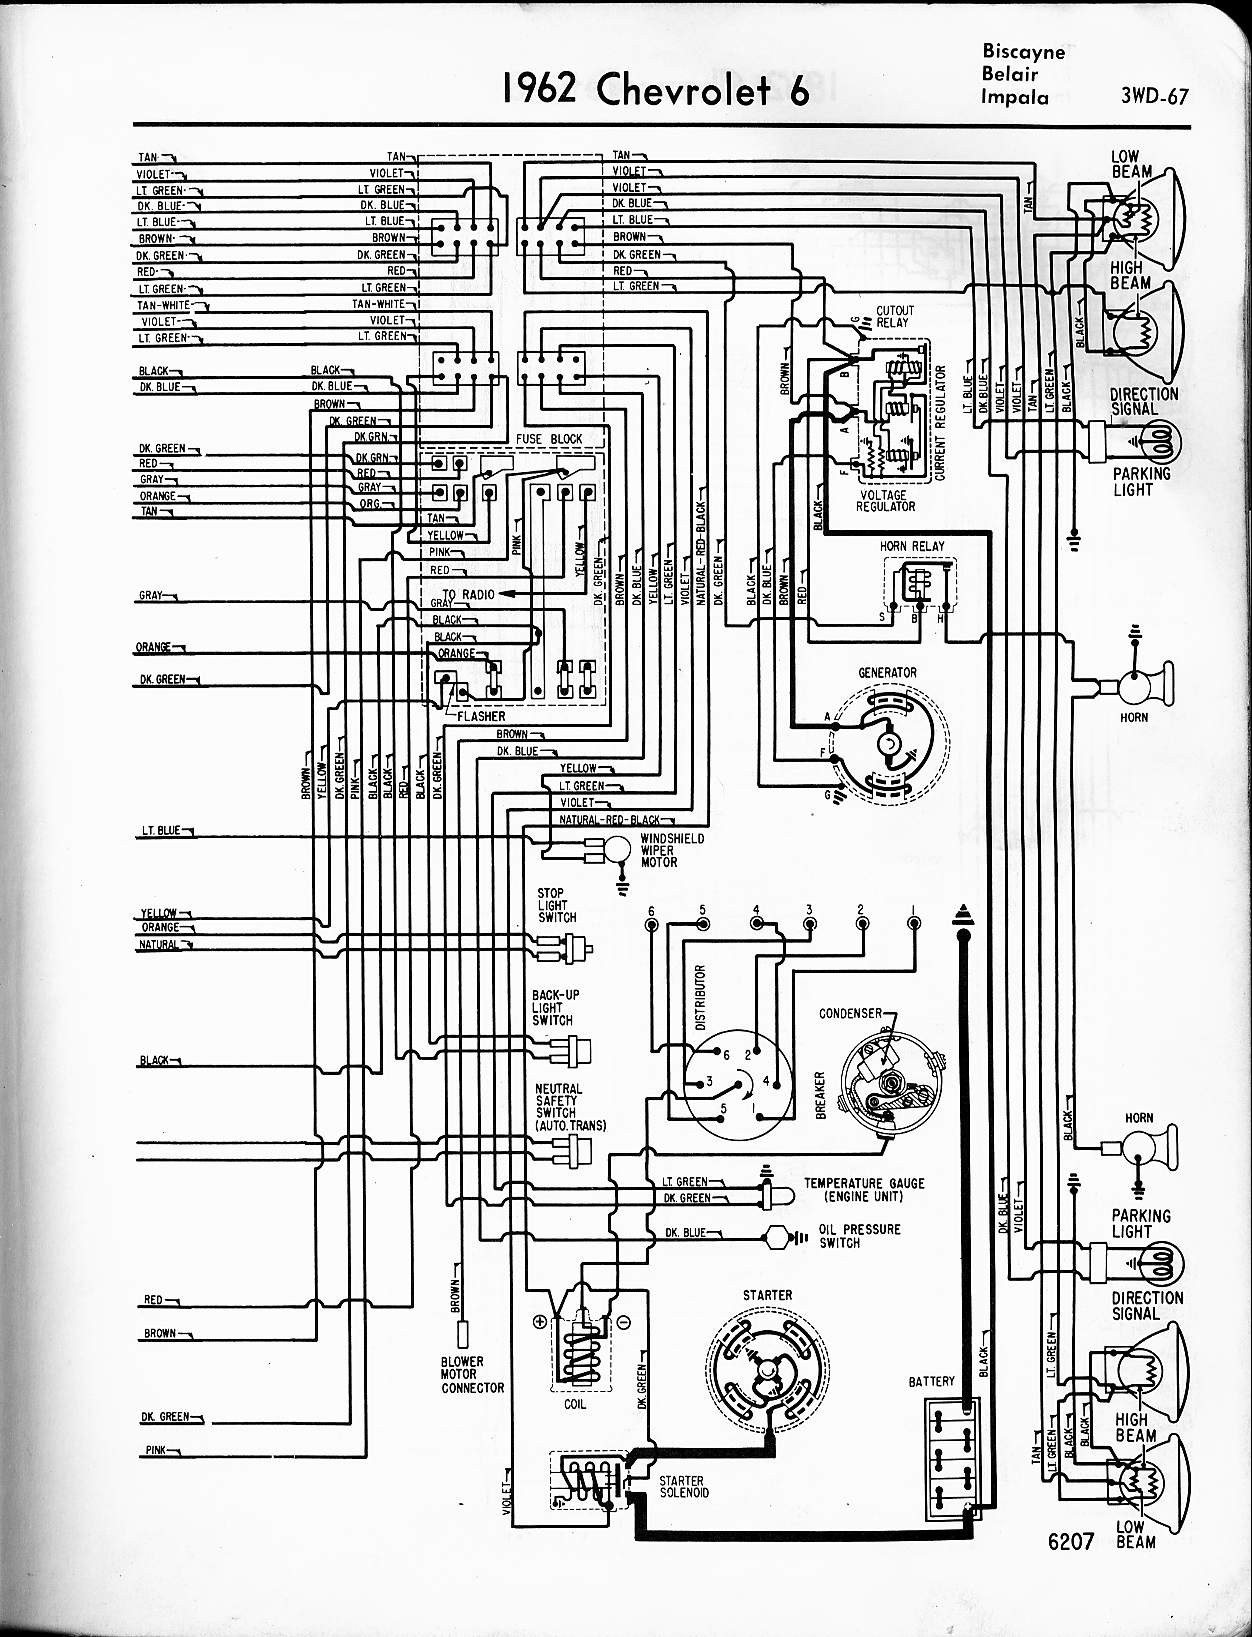 1966 impala convertible wiring diagram 64 impala drawing at getdrawings.com | free for personal use 64 impala drawing of your choice